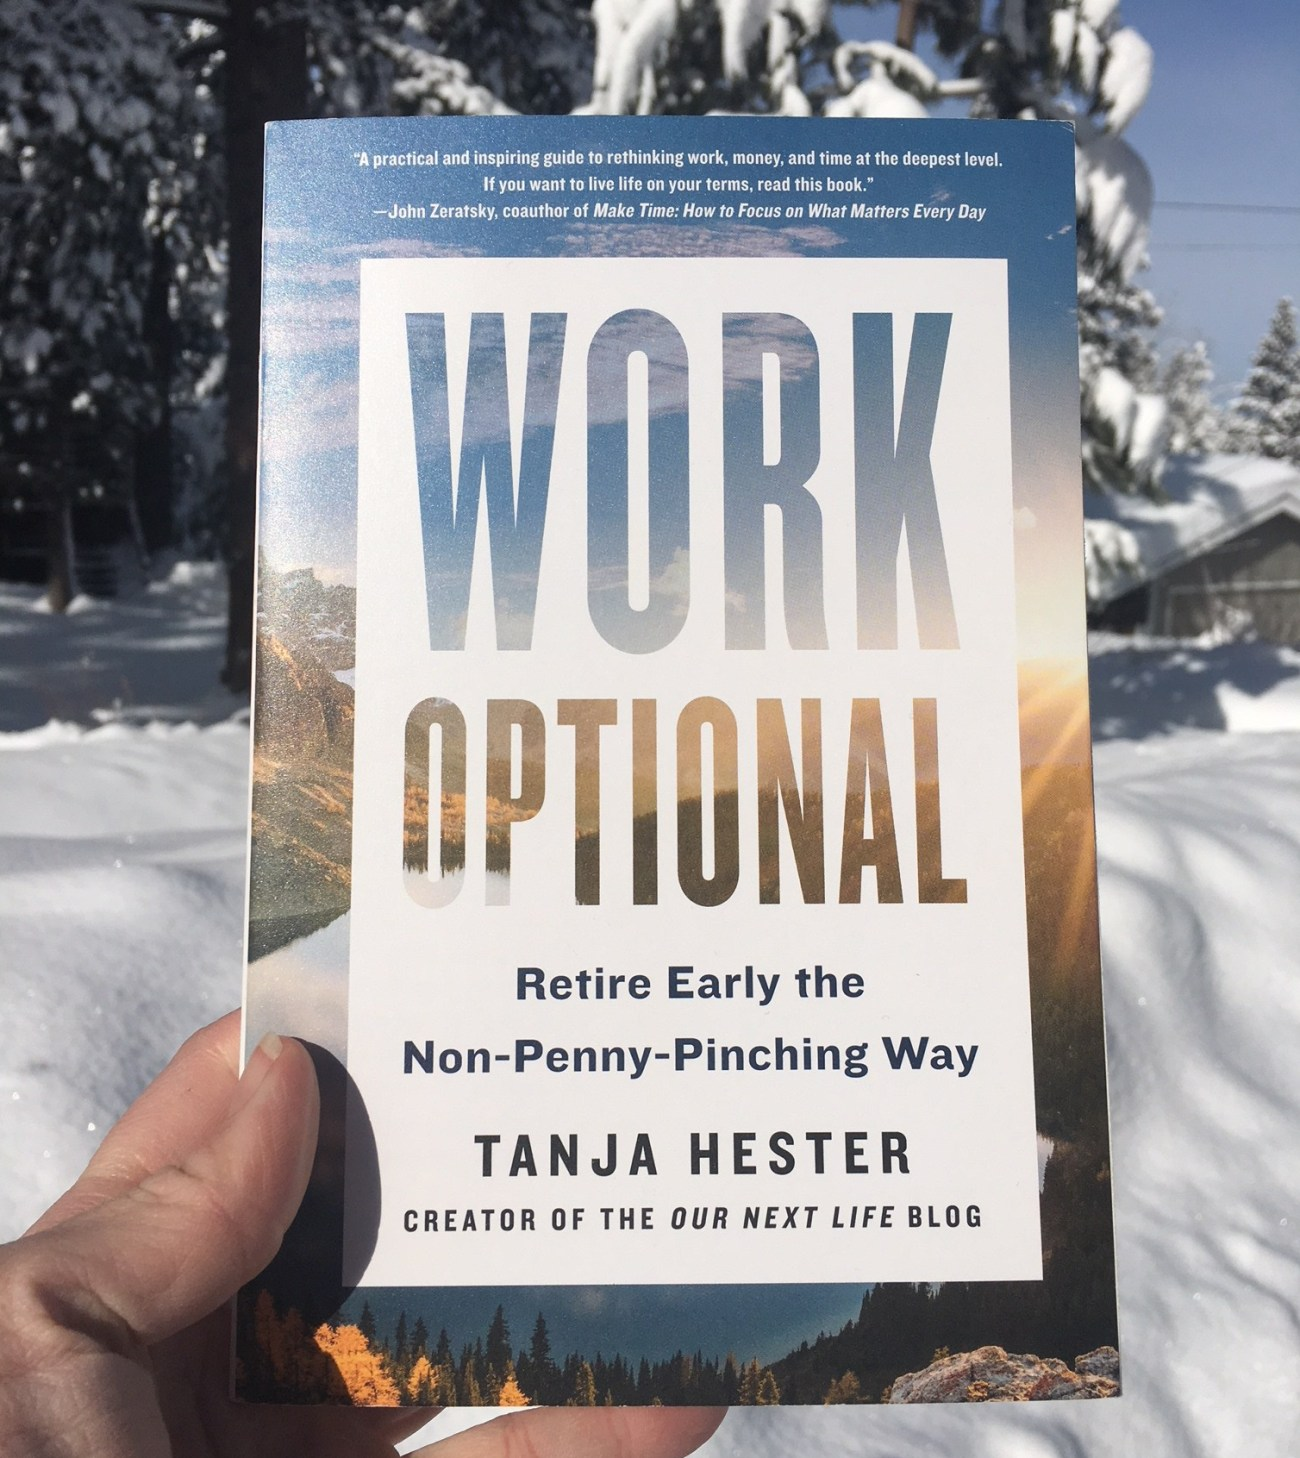 Work Optional: Retire Early the Non-Penny-Pinching Way by Tanja Hester